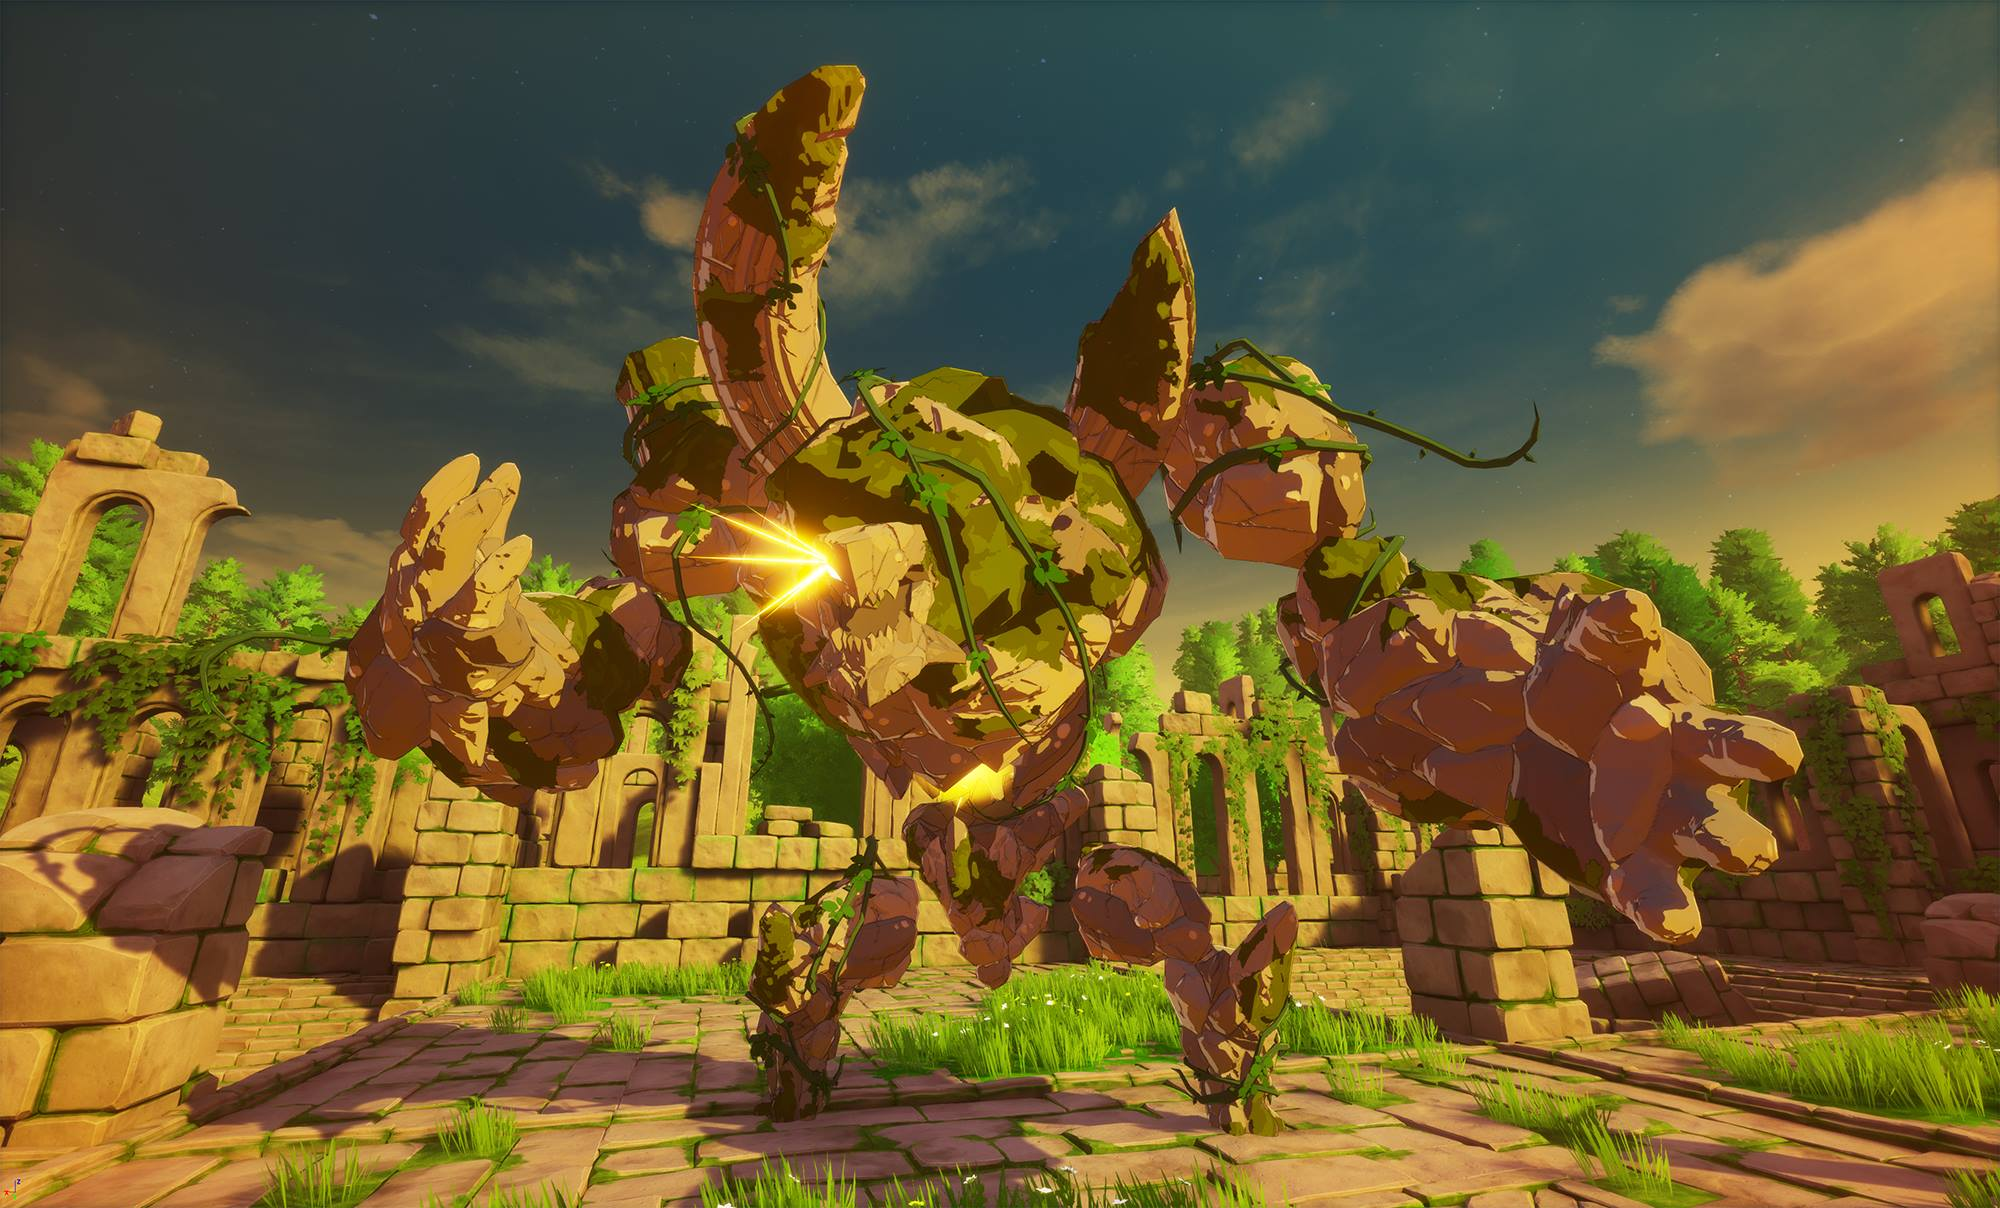 Sparkling Good News Good News Name Name Meaning Bringer Chaos Shows Off More Pve Bosses Development Bringer Bringer dpreview Bringer Of Good News